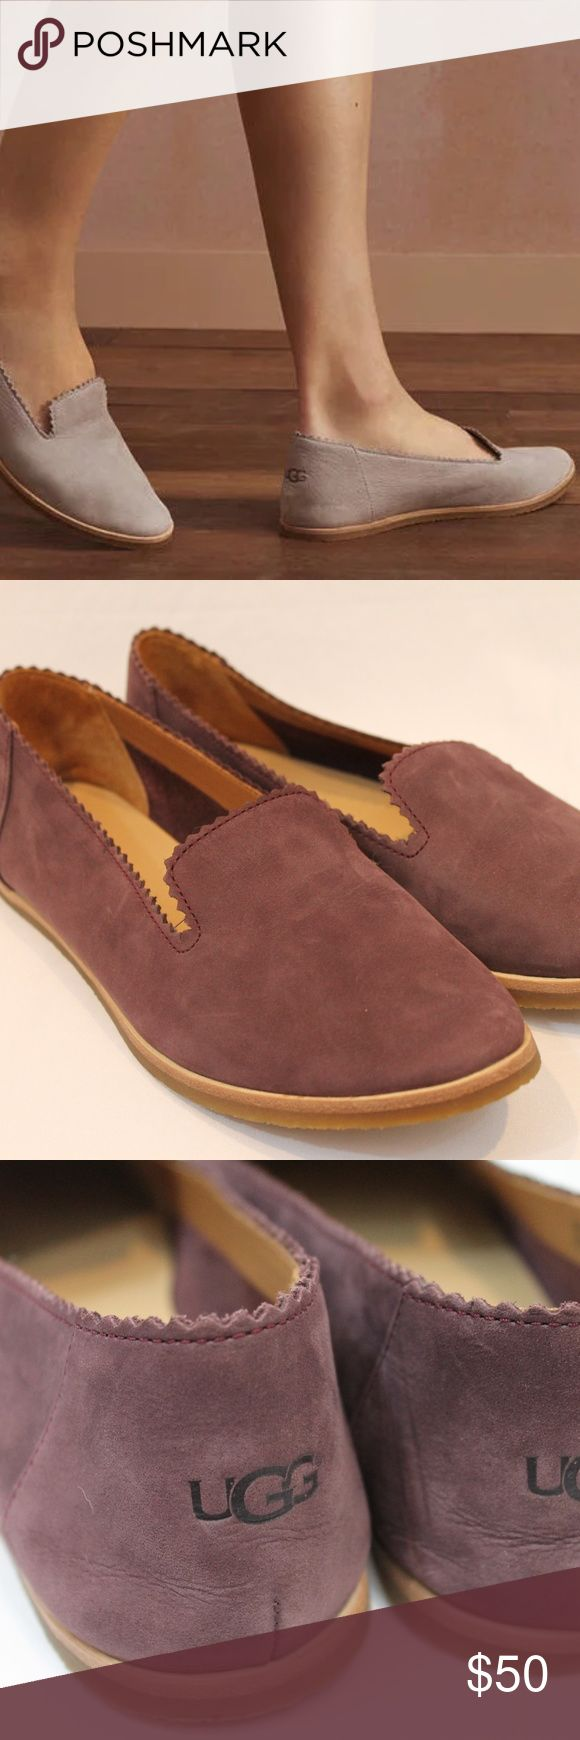 UGG VISTA FLATS LOAFERS NUBUCK SUEDE LEATHER 6.5 ♥ Very gently used, little wear ♥ Size 6.5 ♥ Purchased at Nordstrom; retails for $90 ♥ Burgundy color (not nude as seen in first pic) ♥ Nubuck Leather  Price is firm. I do not trade and do not respond to messages asking me to do so. UGG Shoes Flats & Loafers